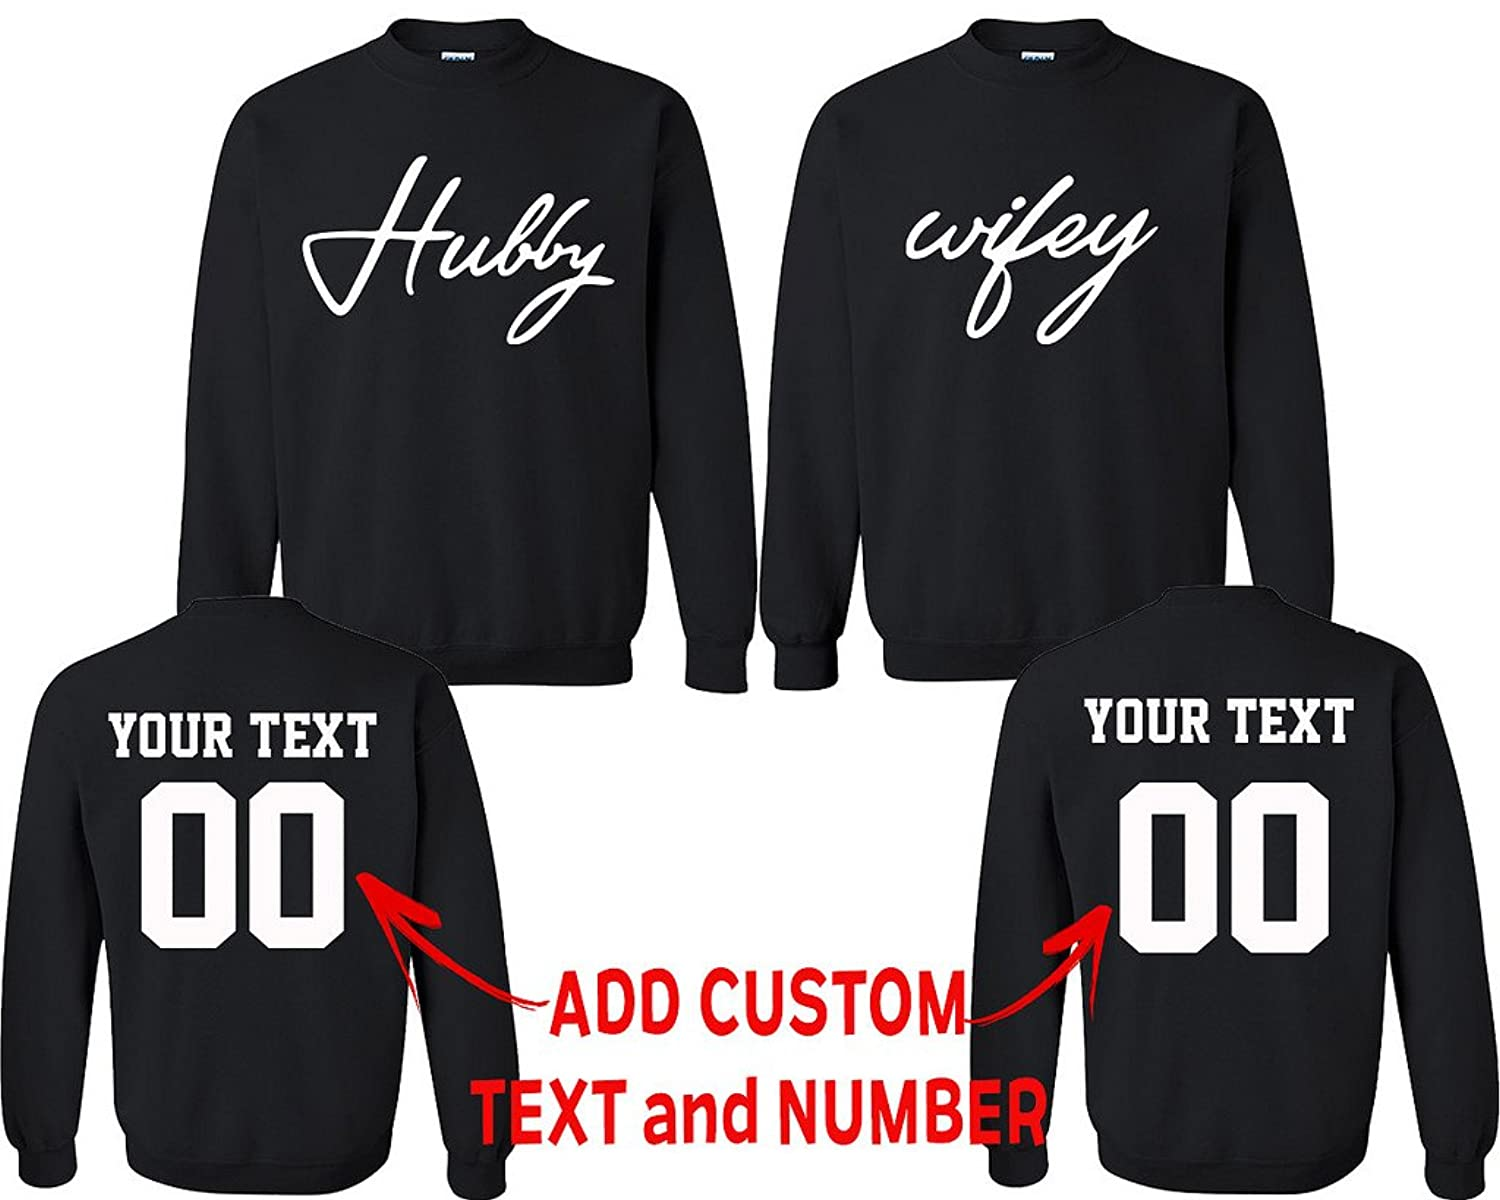 6eb71f7b88 Online Cheap wholesale CRAZYDAISYWORLD Hubby Wifey Pattern Customized Text  Name Design Couple Hoodie, Crewneck Sweatshirt, Hoodies Suppliers